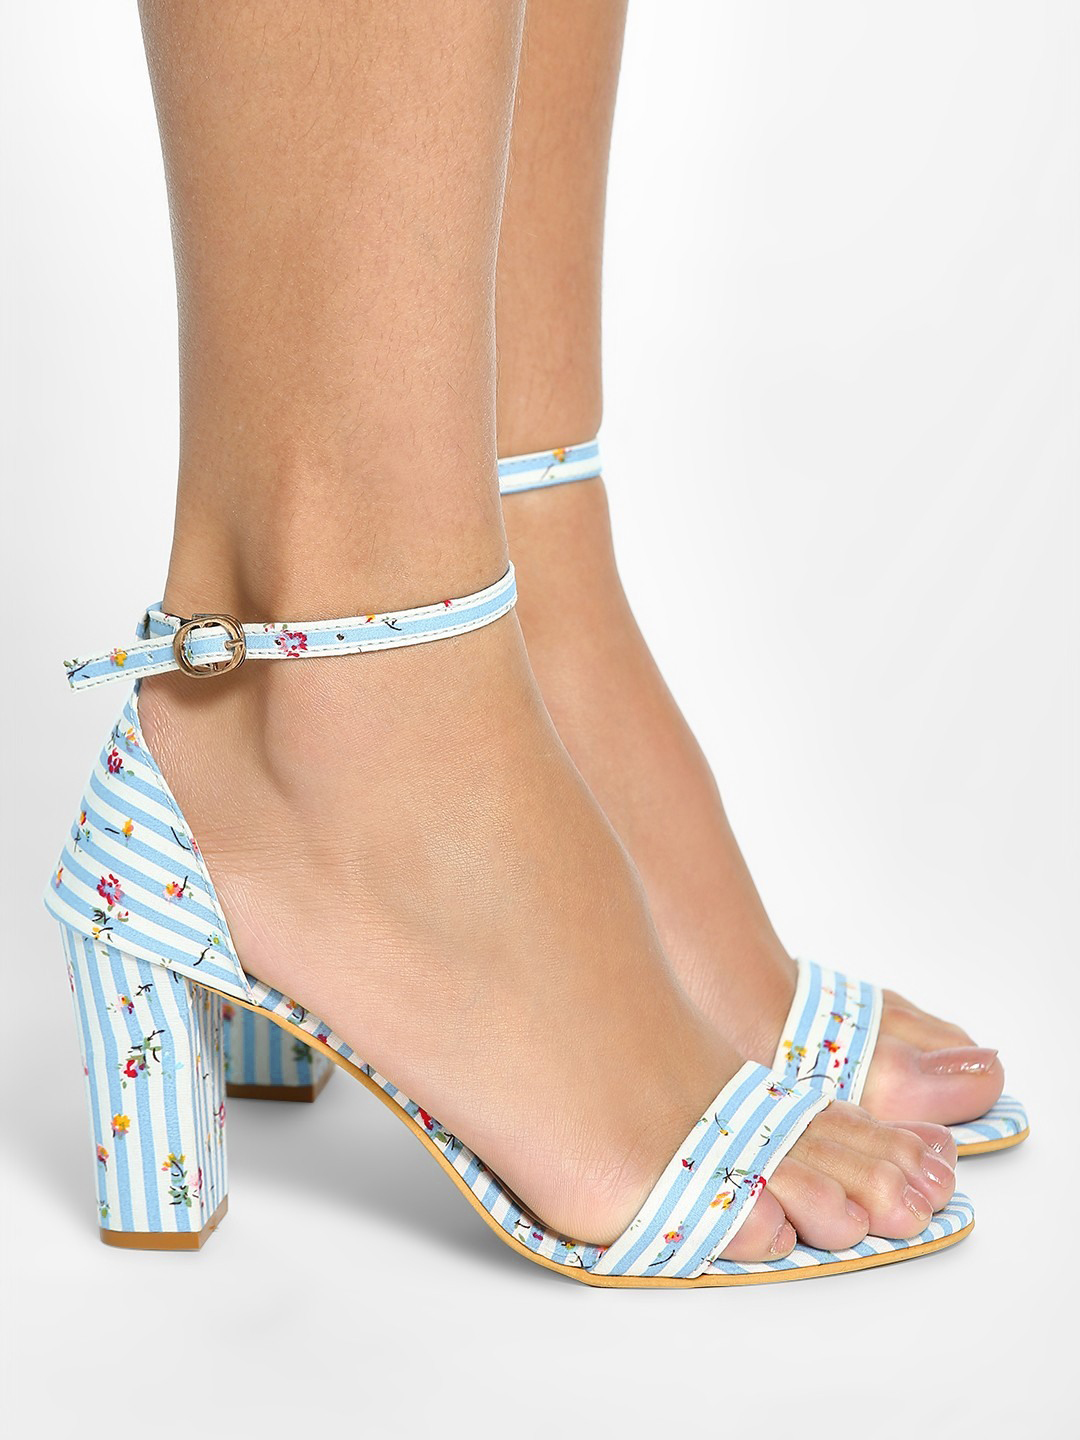 My Foot Couture Blue Floral Print Stripe Block Heeled Sandals 1